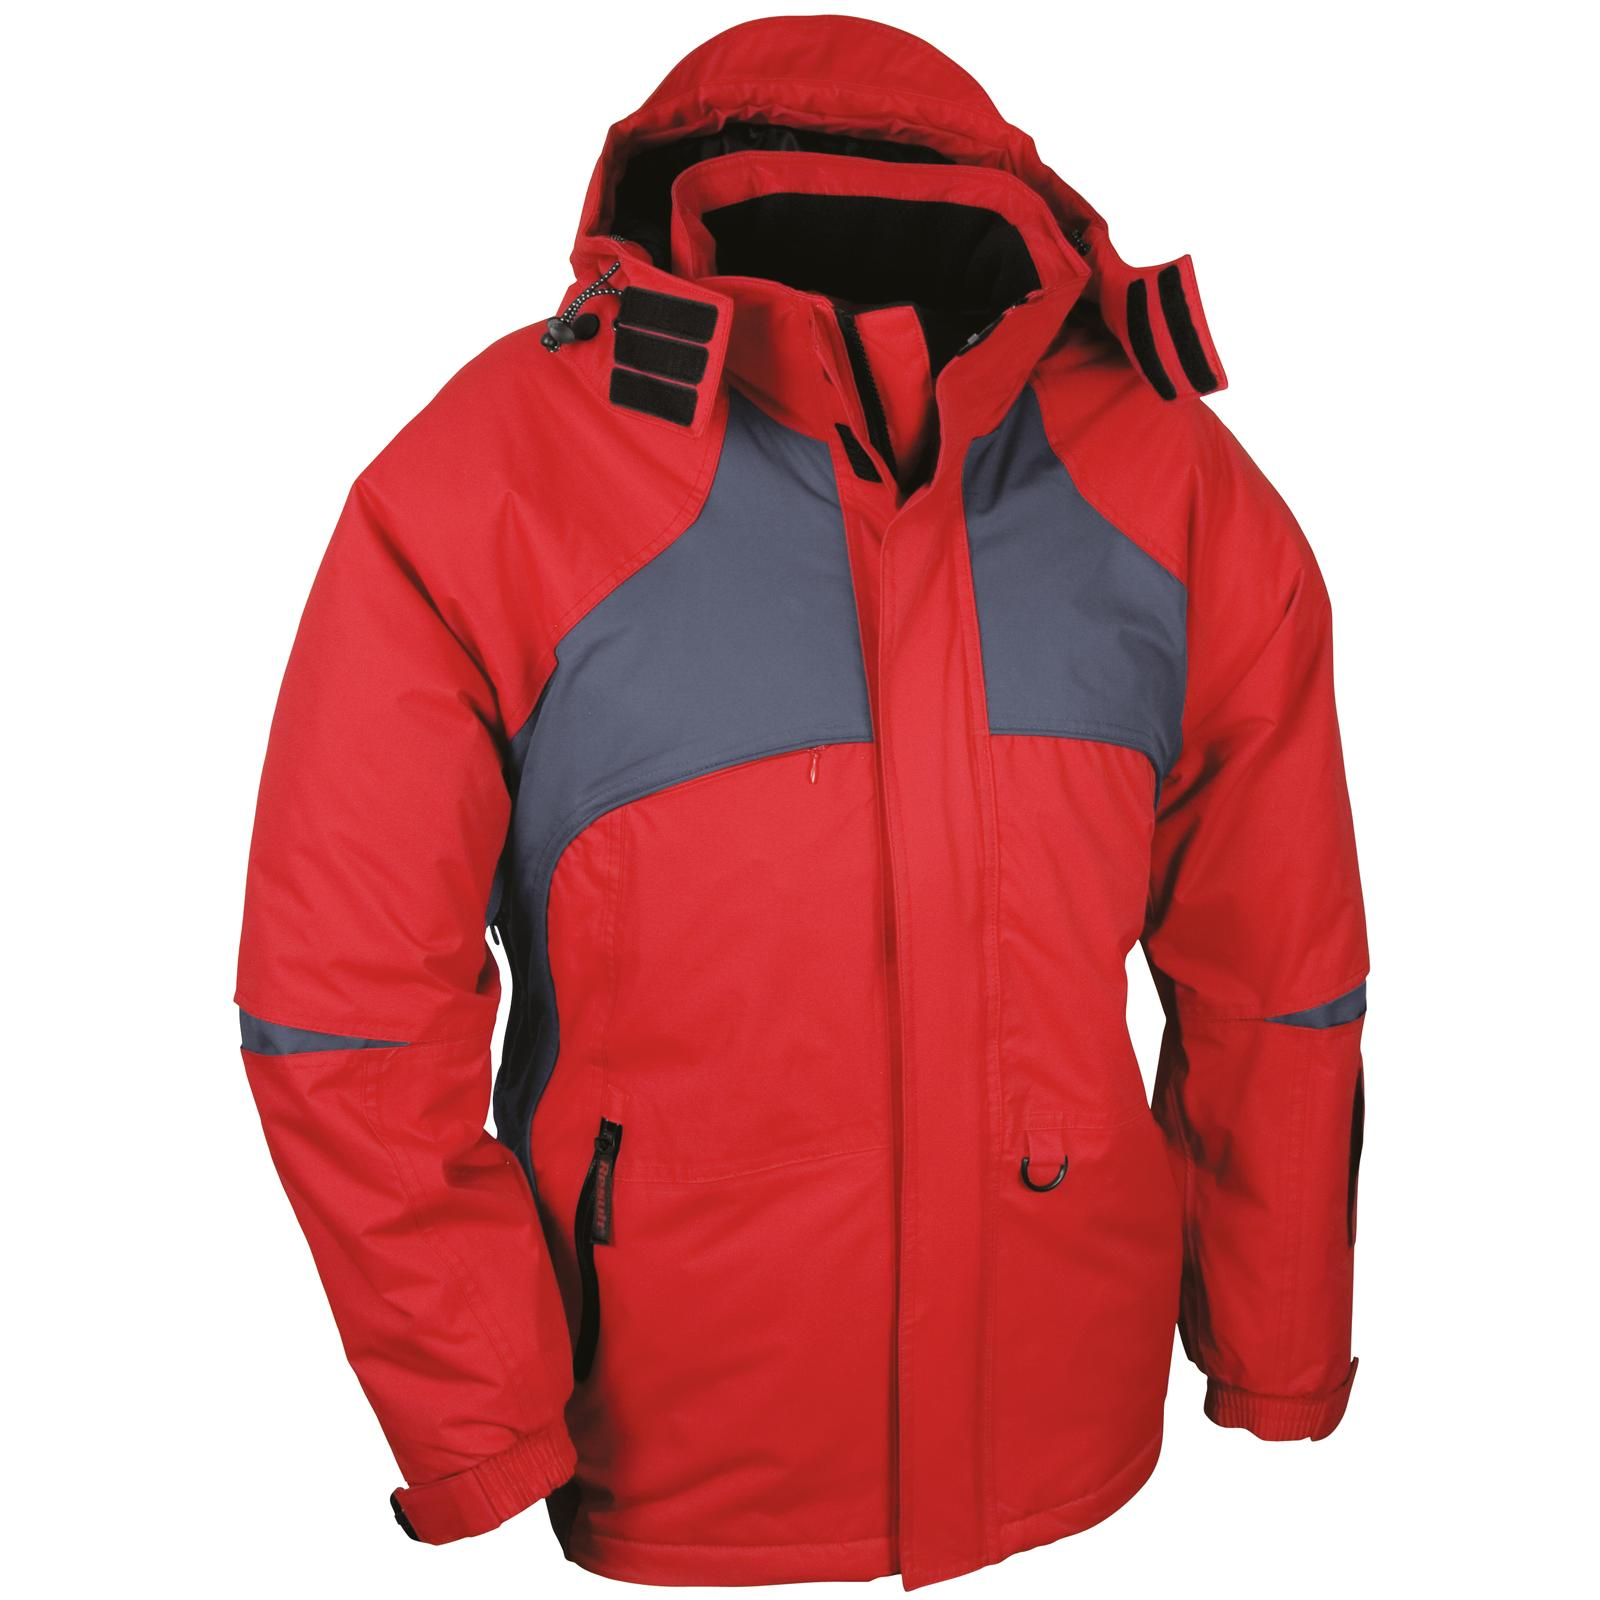 Extreme Weather Clothing Uk